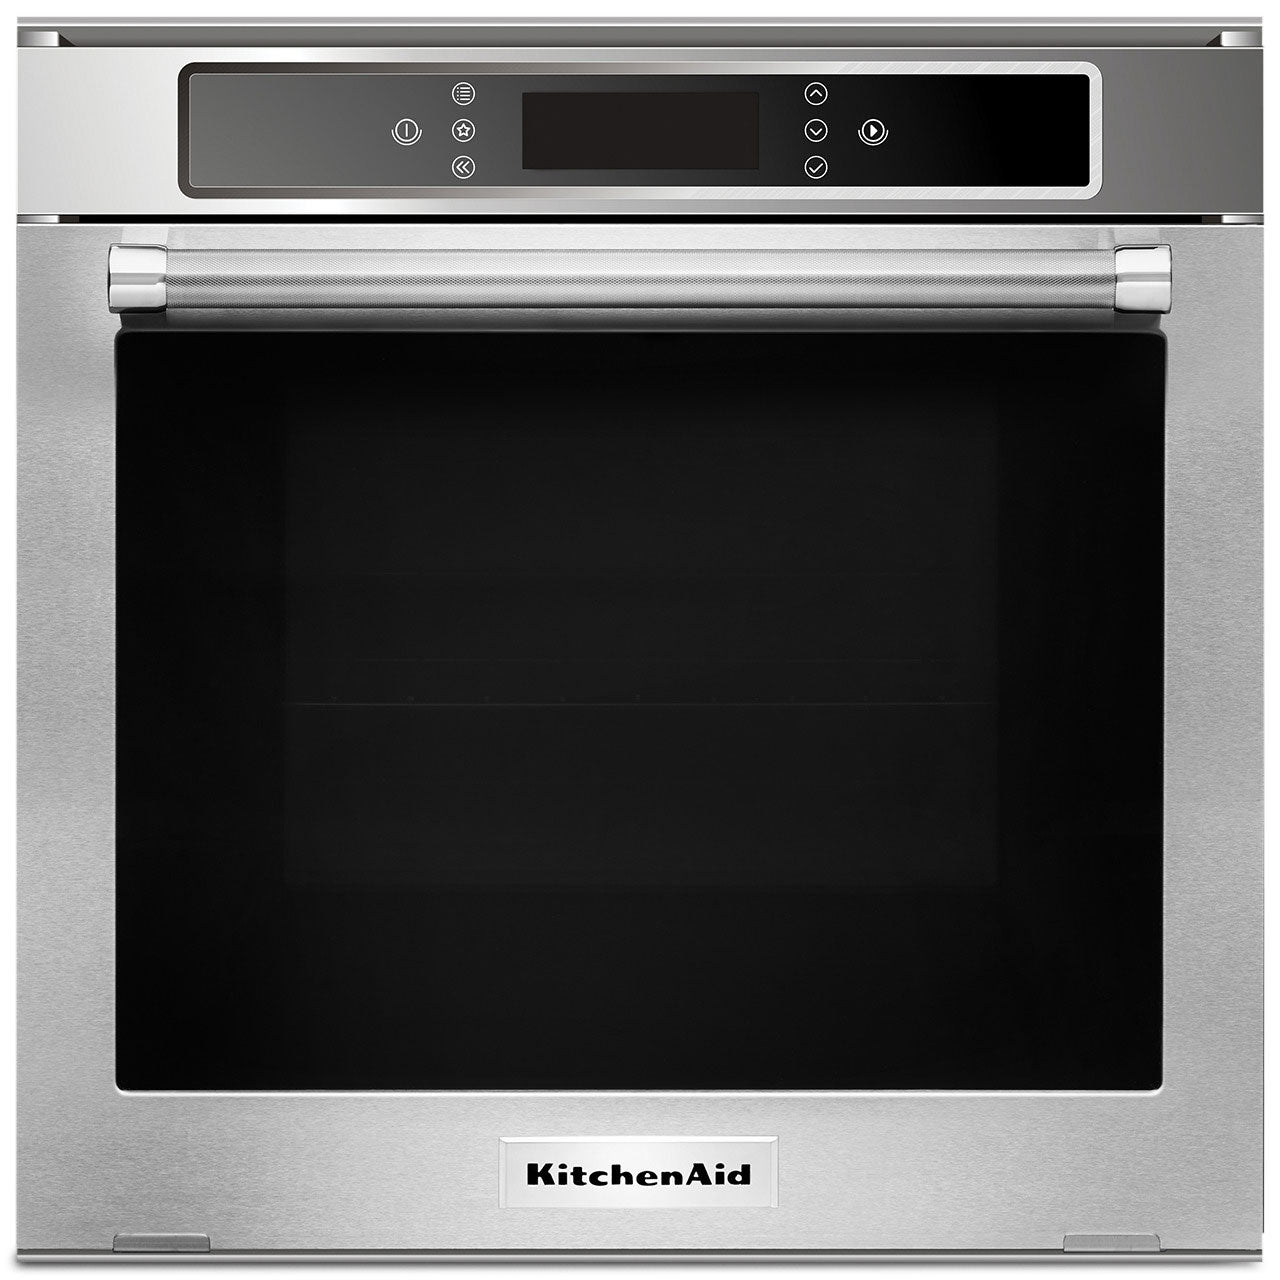 KitchenAid 24'' 2.6 Cu. Ft. Single Electric Wall Oven – KOSC104FSS on brinkmann oven, cuisinart oven, proctor silex oven, bosch oven, rollergrill oven, sanyo oven, montgomery ward oven, professional series oven, dometic oven, whirl pool oven, lg appliances oven, sub zero oven, black decker oven, wolf oven, delfino oven, wolfgang puck oven, 1950 gas stove and oven, small oven, painting a stove or oven, electrolux oven,